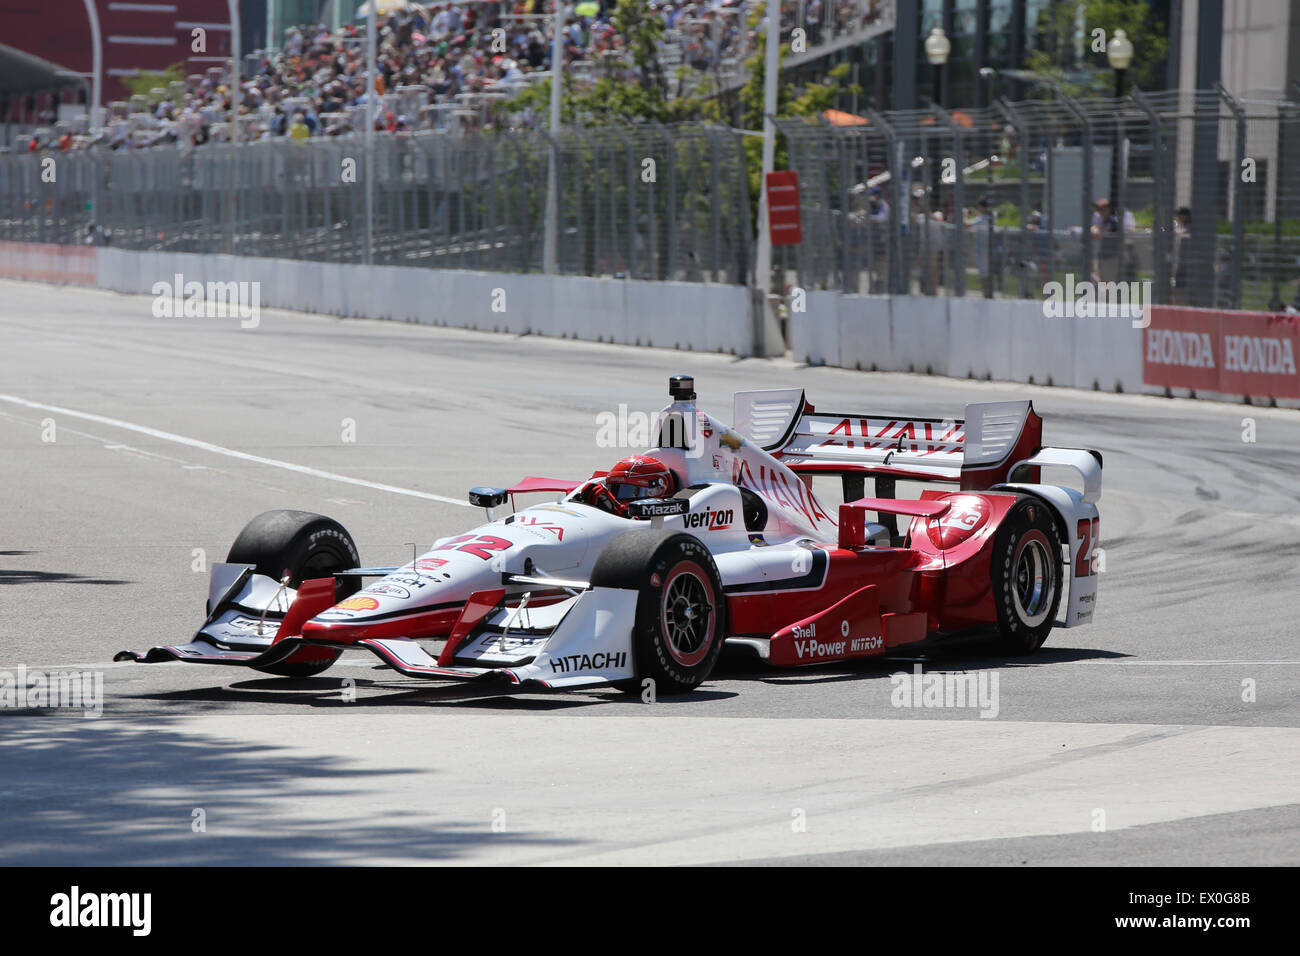 Toronto public event Hondy Indy car racing weekend - Stock Image